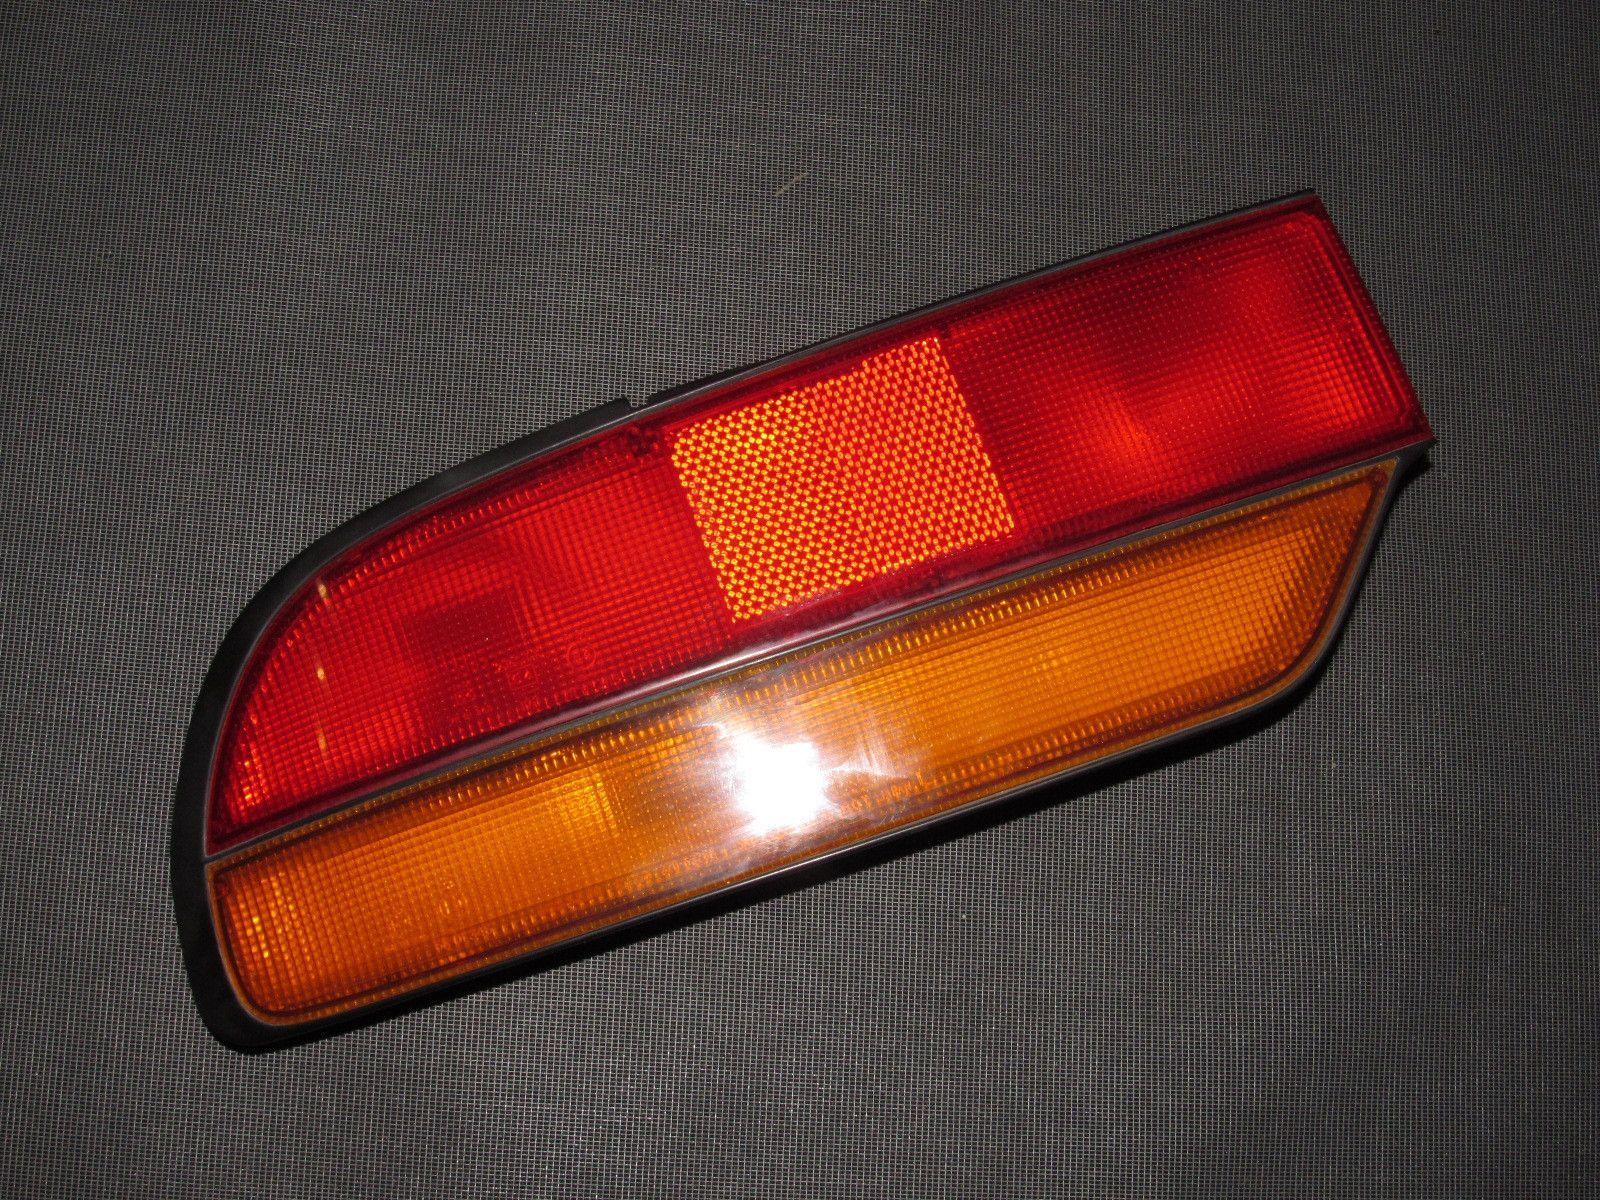 91 92 93 94 Nissan 240sx Oem Interior Fuse Box Cover Autopartone 90 89 Hatchback Tail Light Left